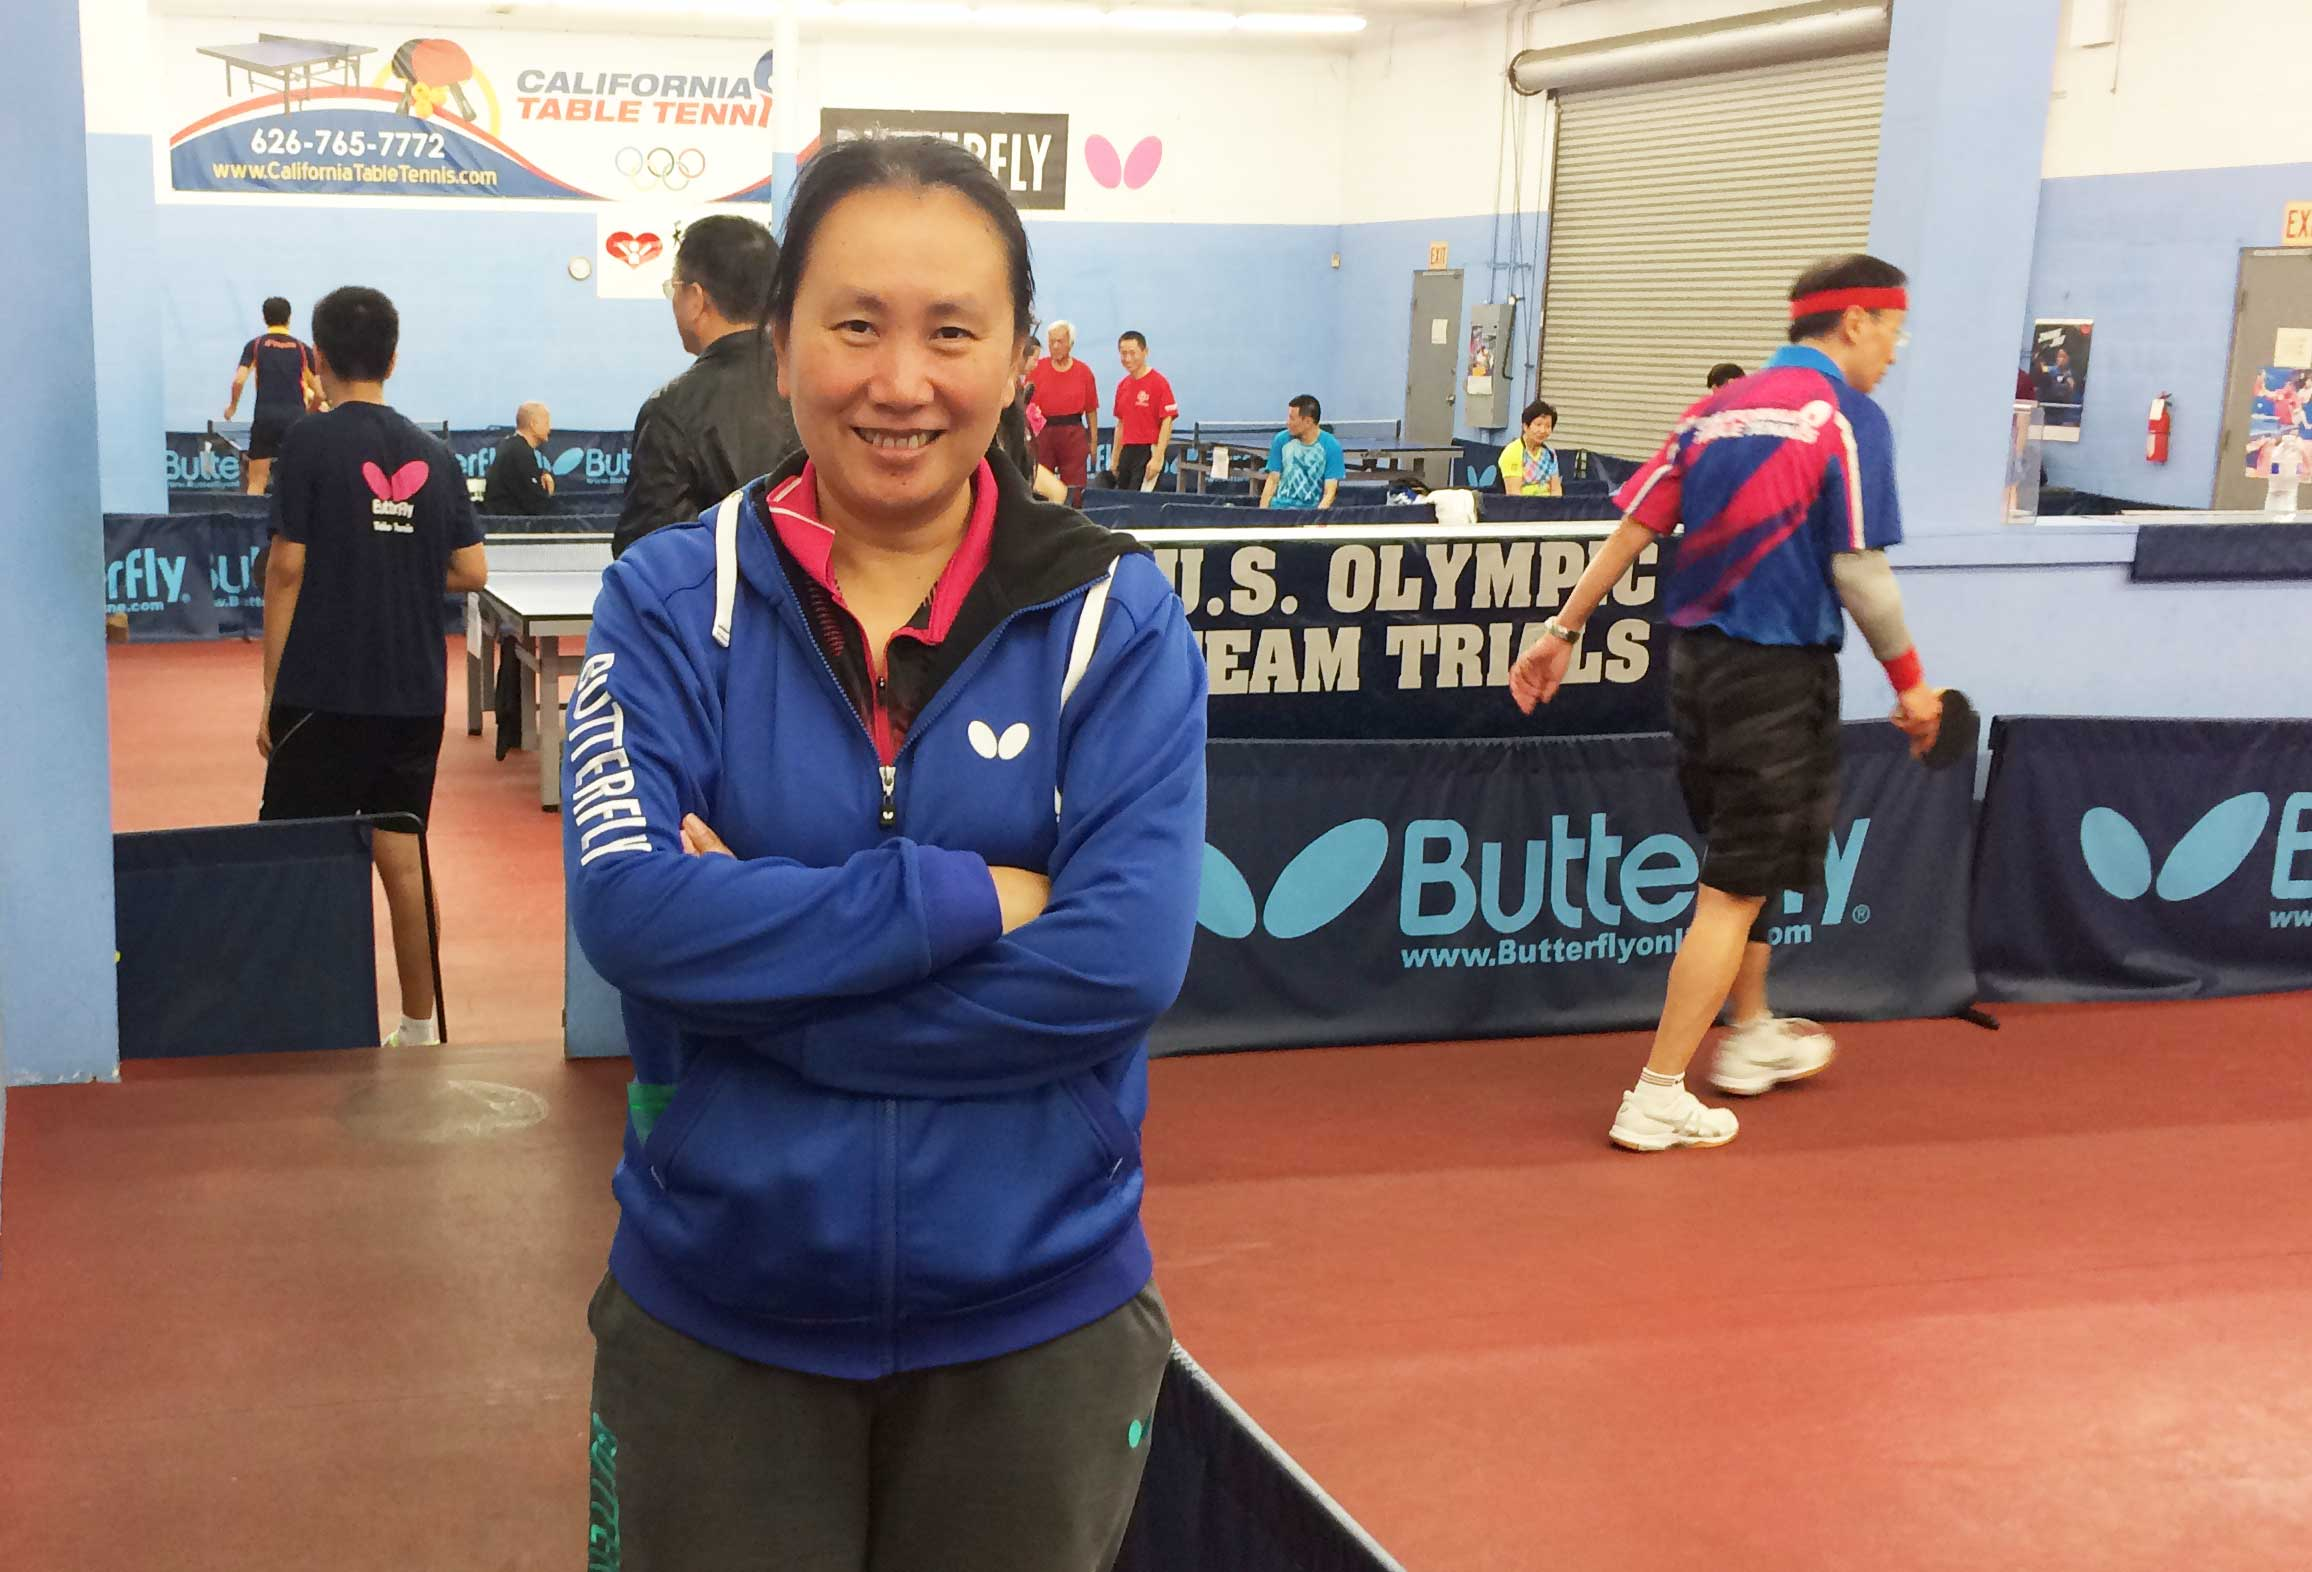 WAB Club Feature: California Table Tennis, and the Angel's Cup Butterfly Team Tournament